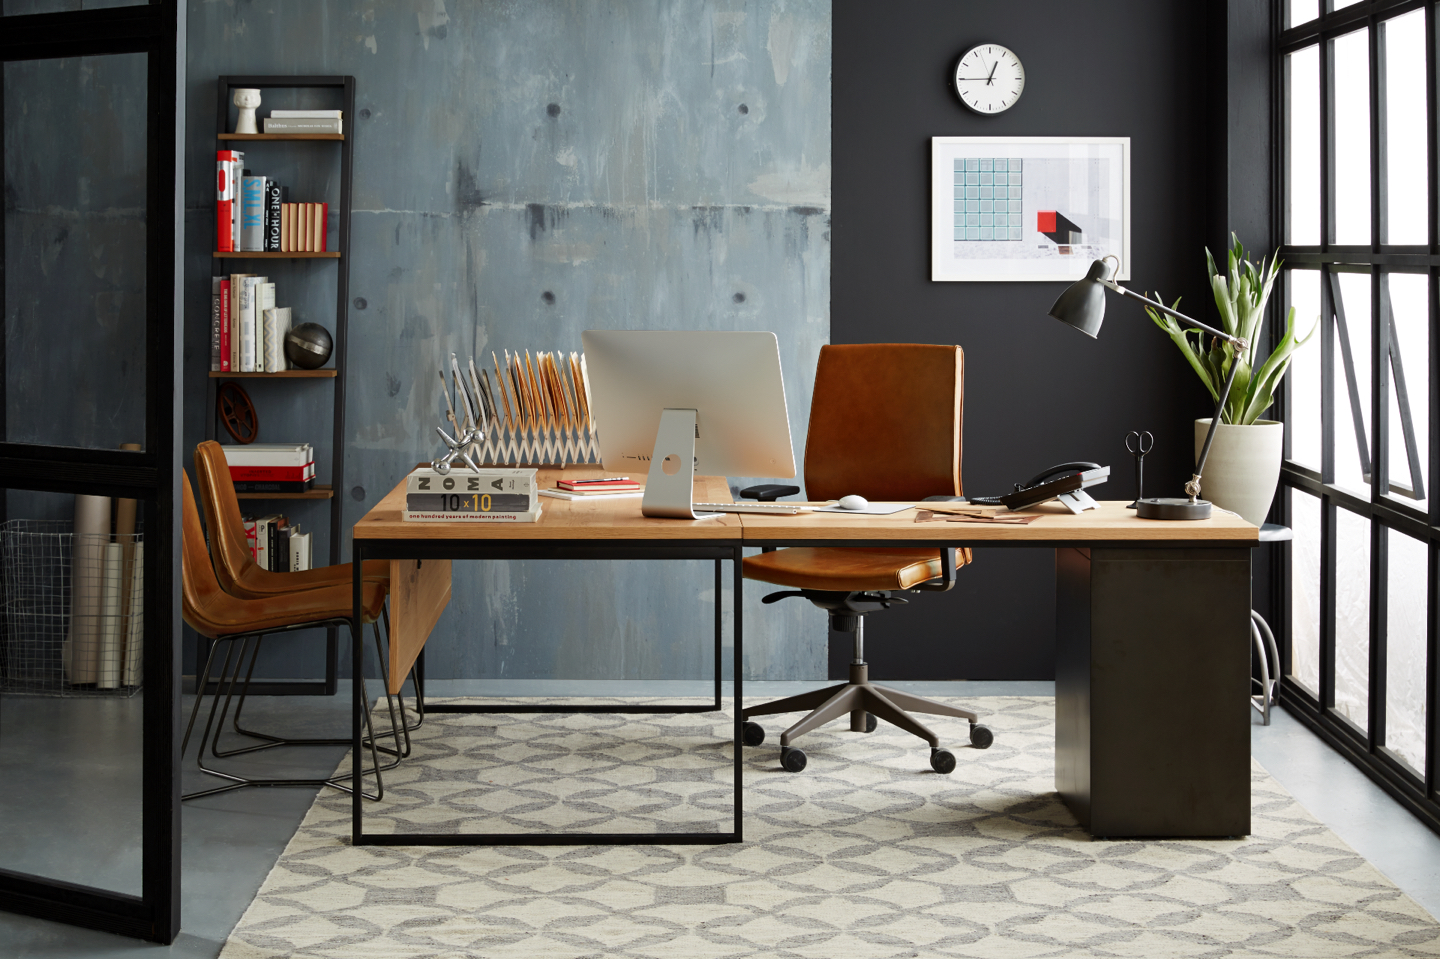 75 Office Furniture Warehouse Inc Penn Hills Pa You Definitely Have The Idea Of Office